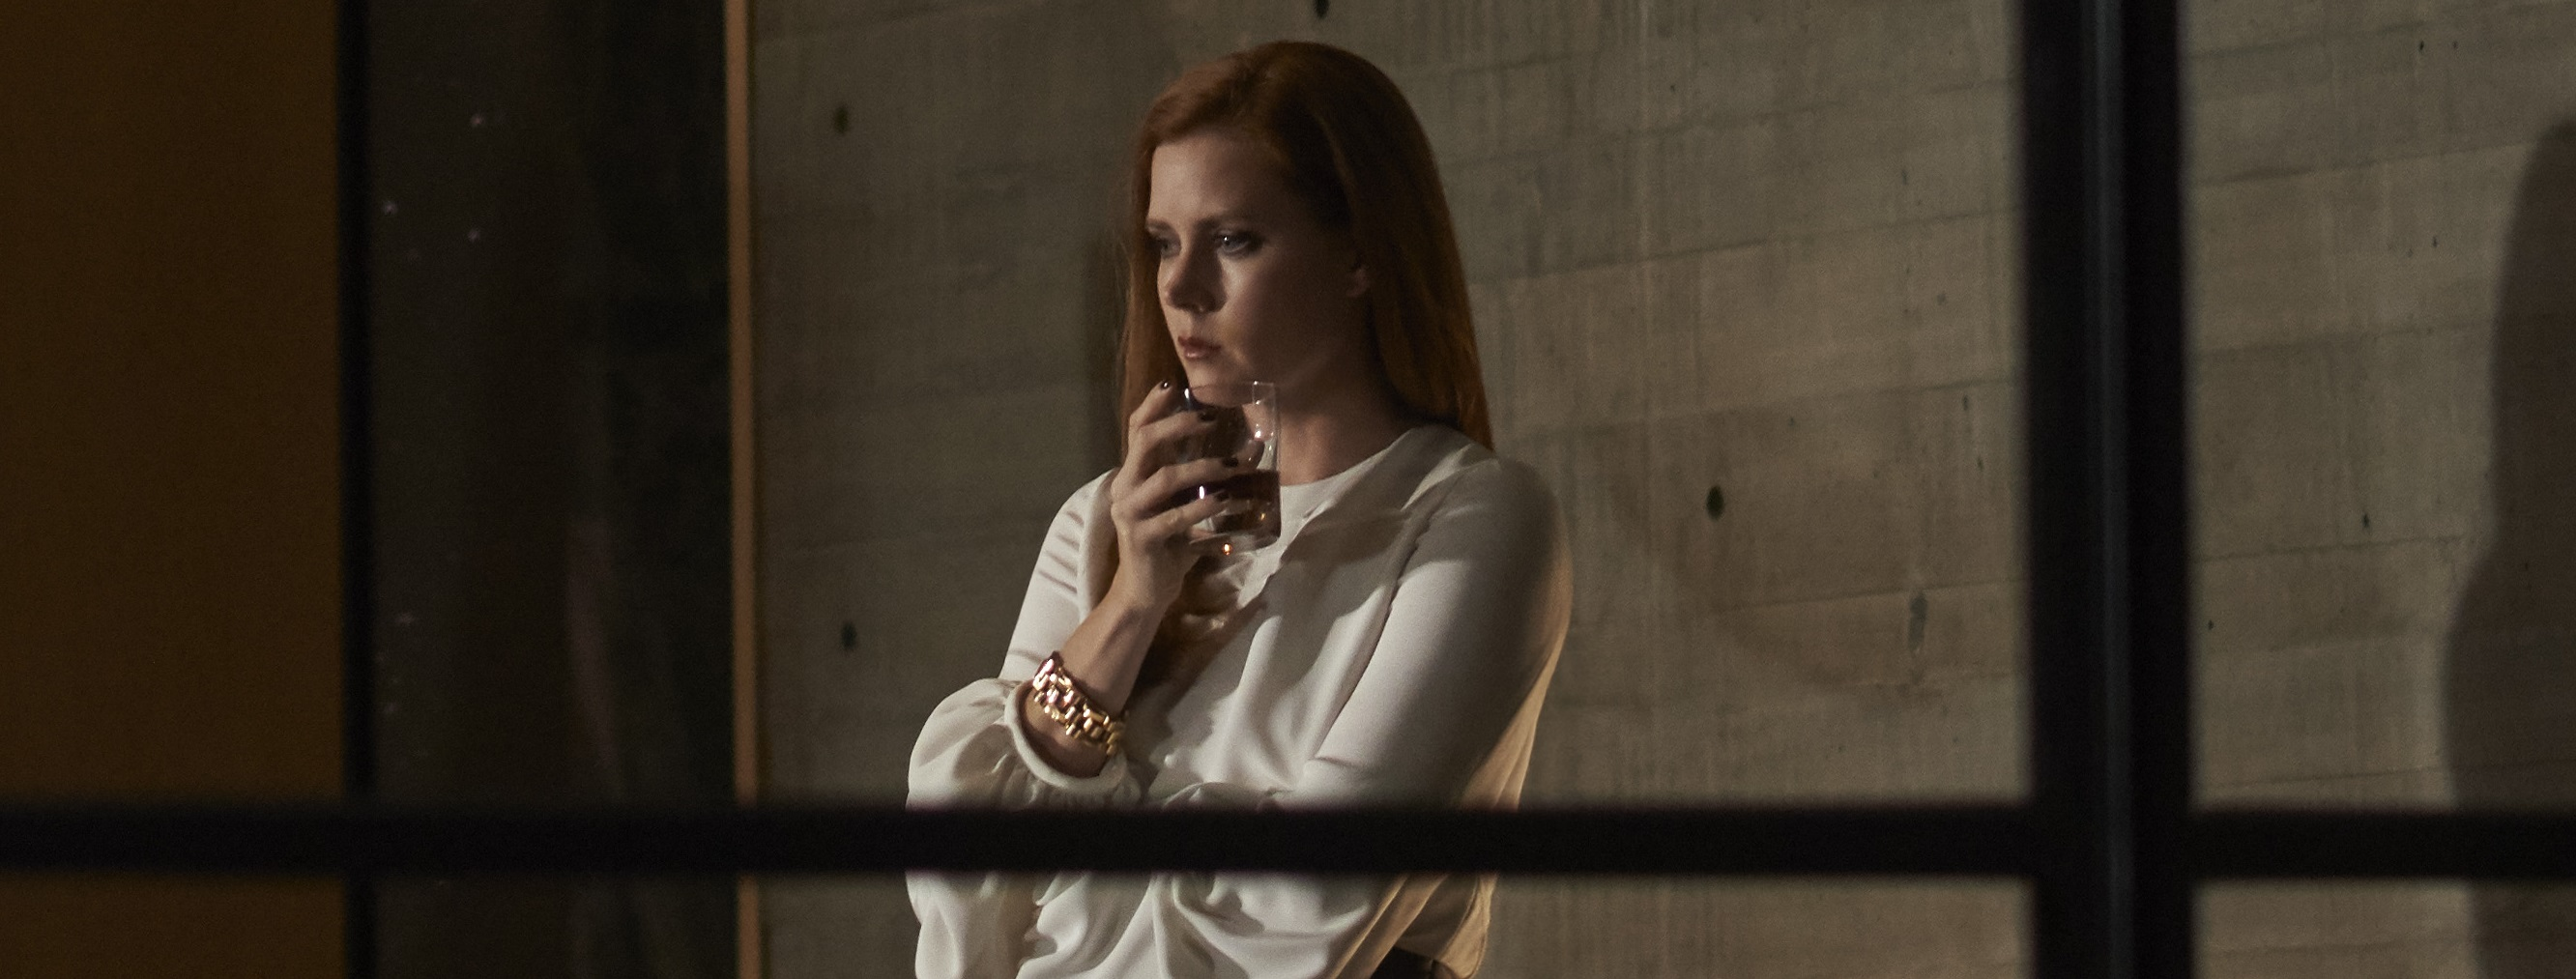 """Amy Adams Nude In Nocturnal Animals tom ford's """"nocturnal animals"""" is a flawed but gripping film"""